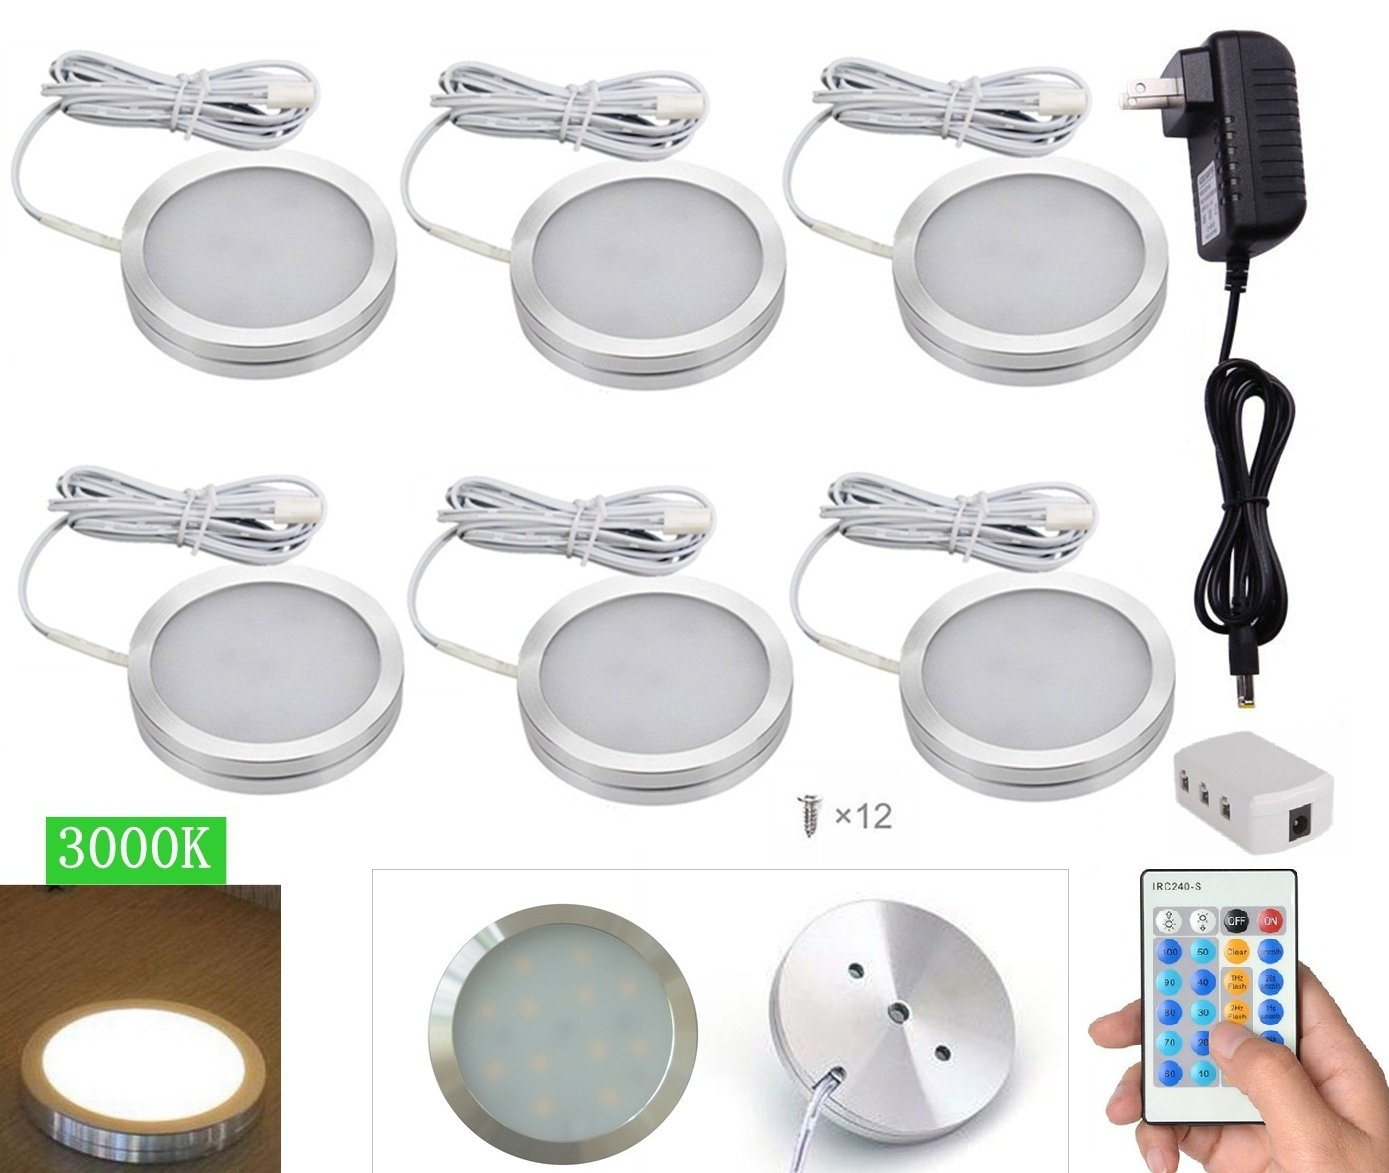 Xking 6 Pcs Warm White Dimmable LED Under Cabinet Lighting Kit, 12V12W / controllable: flash , strobe , fade